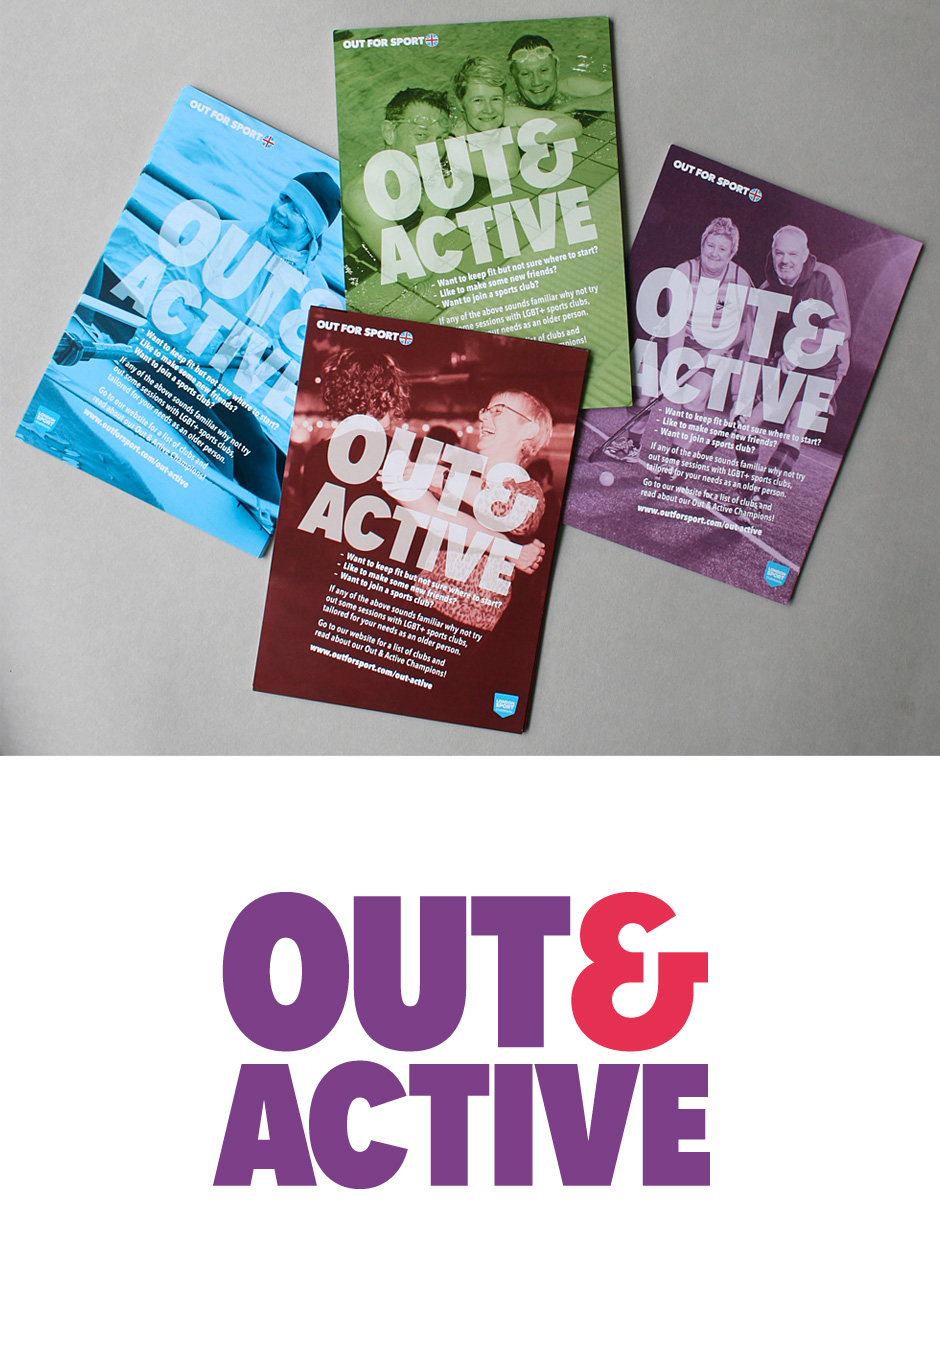 A5 promotion flyers and Out & Active logo